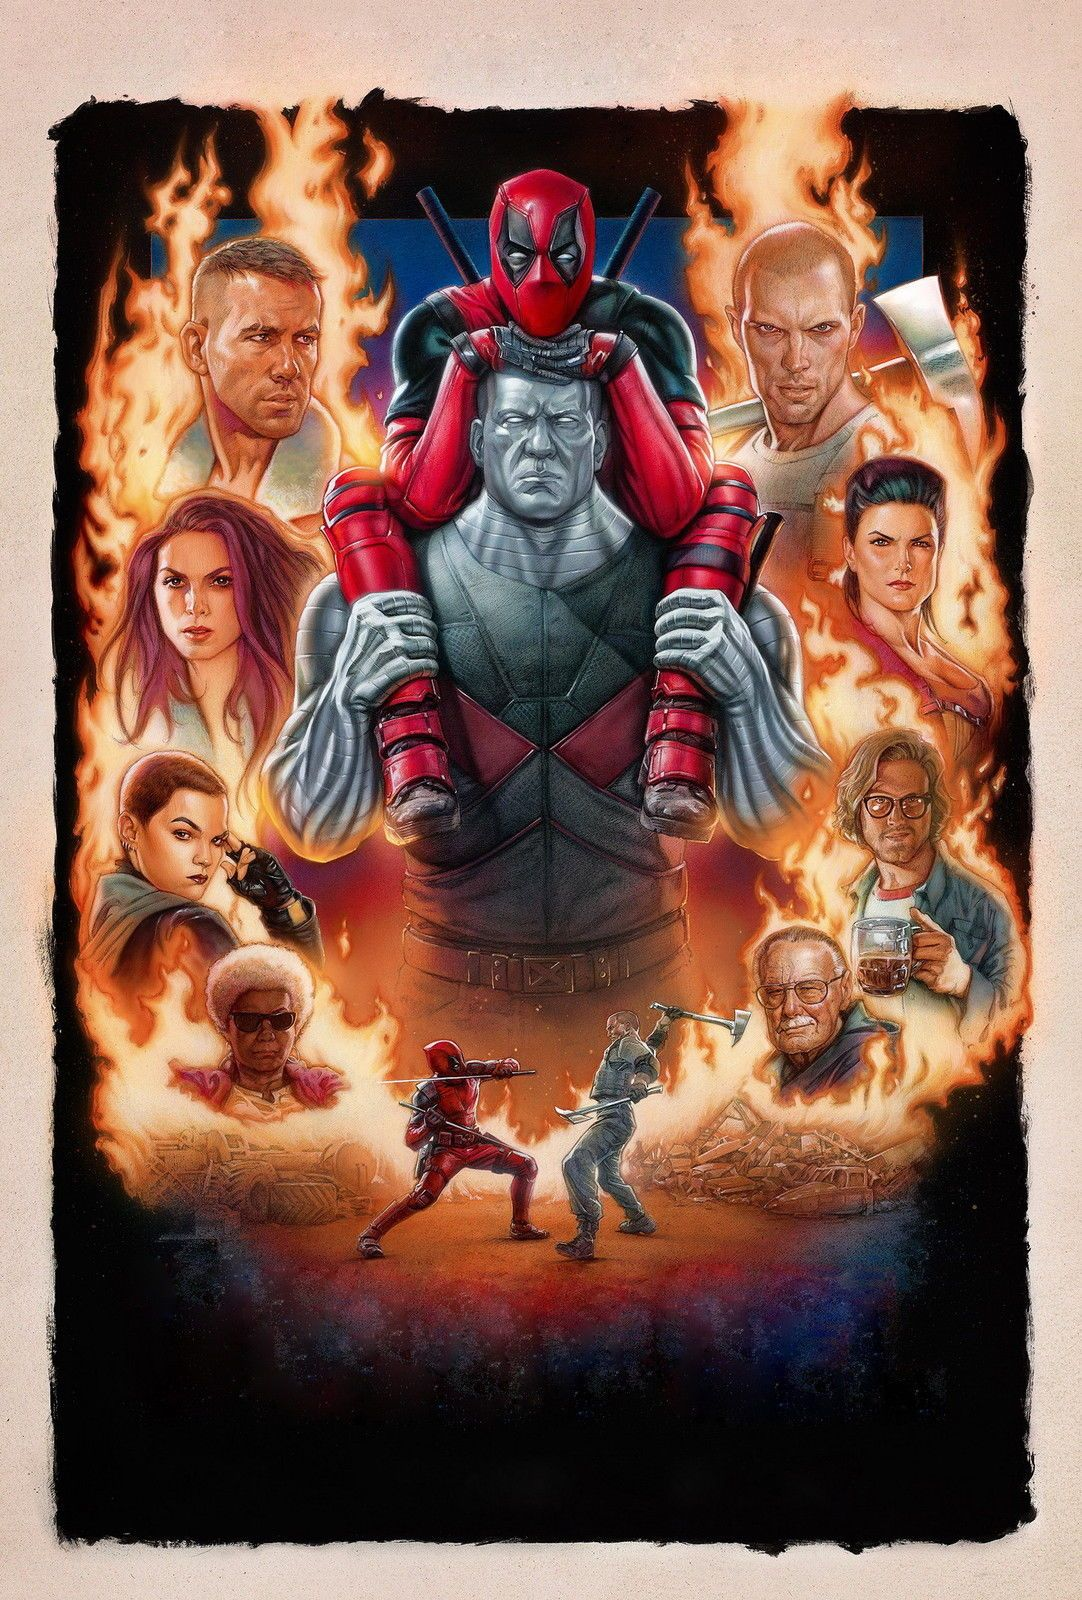 DEADPOOL 2 UNICORN IMAX MOVIE POSTER MARVEL FILM A4